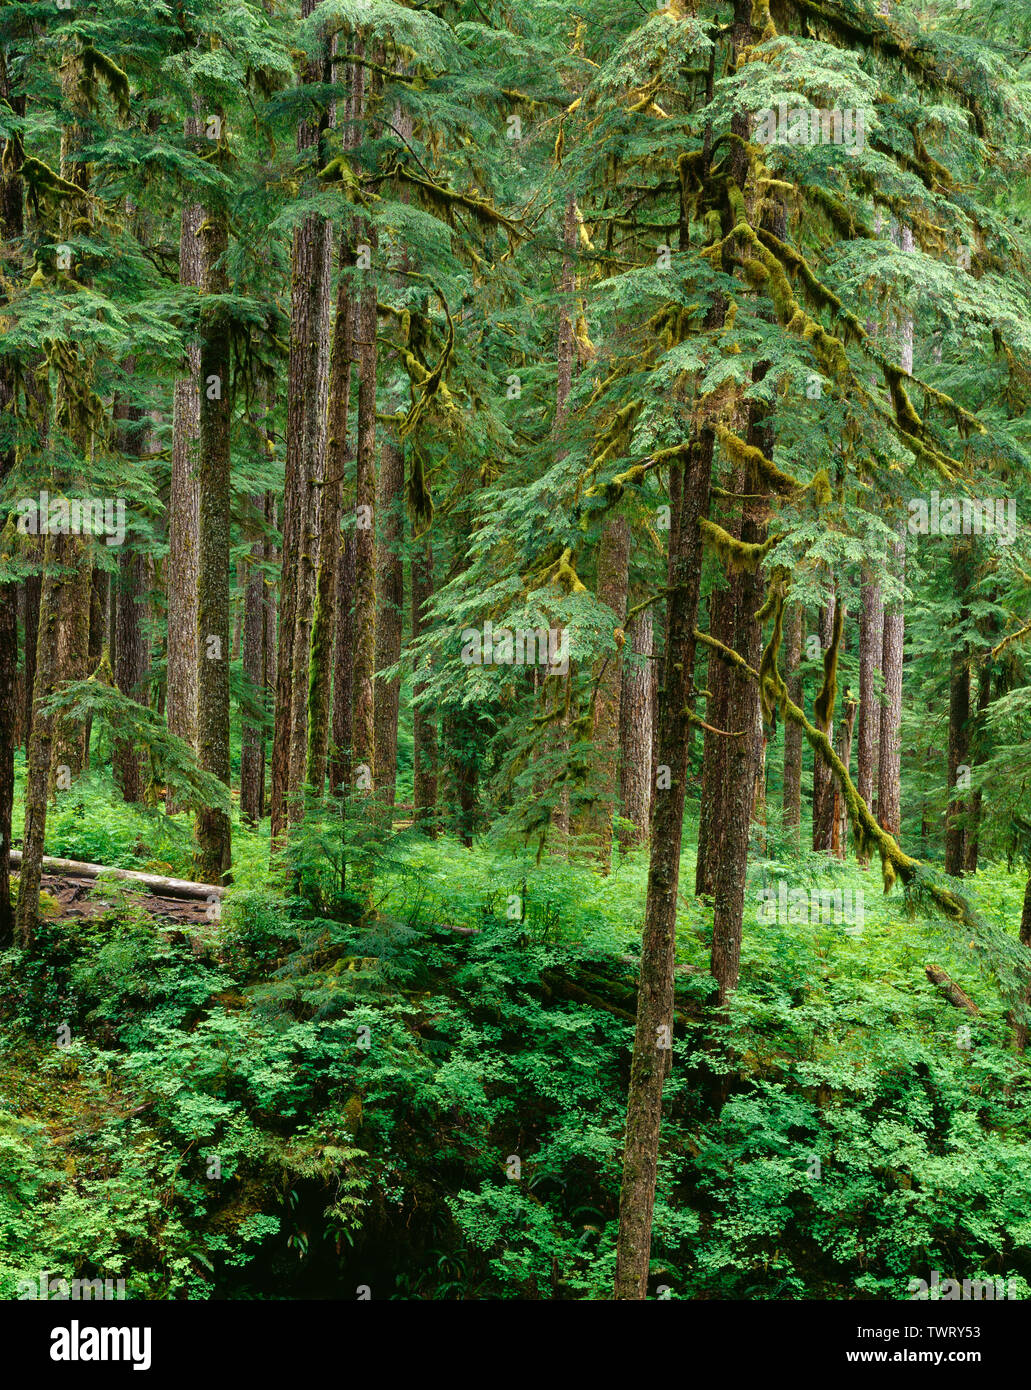 USA, Washington, Olympic National Park, Old growth forest of western hemlock (Tsuga heterophylla) in Sol Duc Valley. - Stock Image